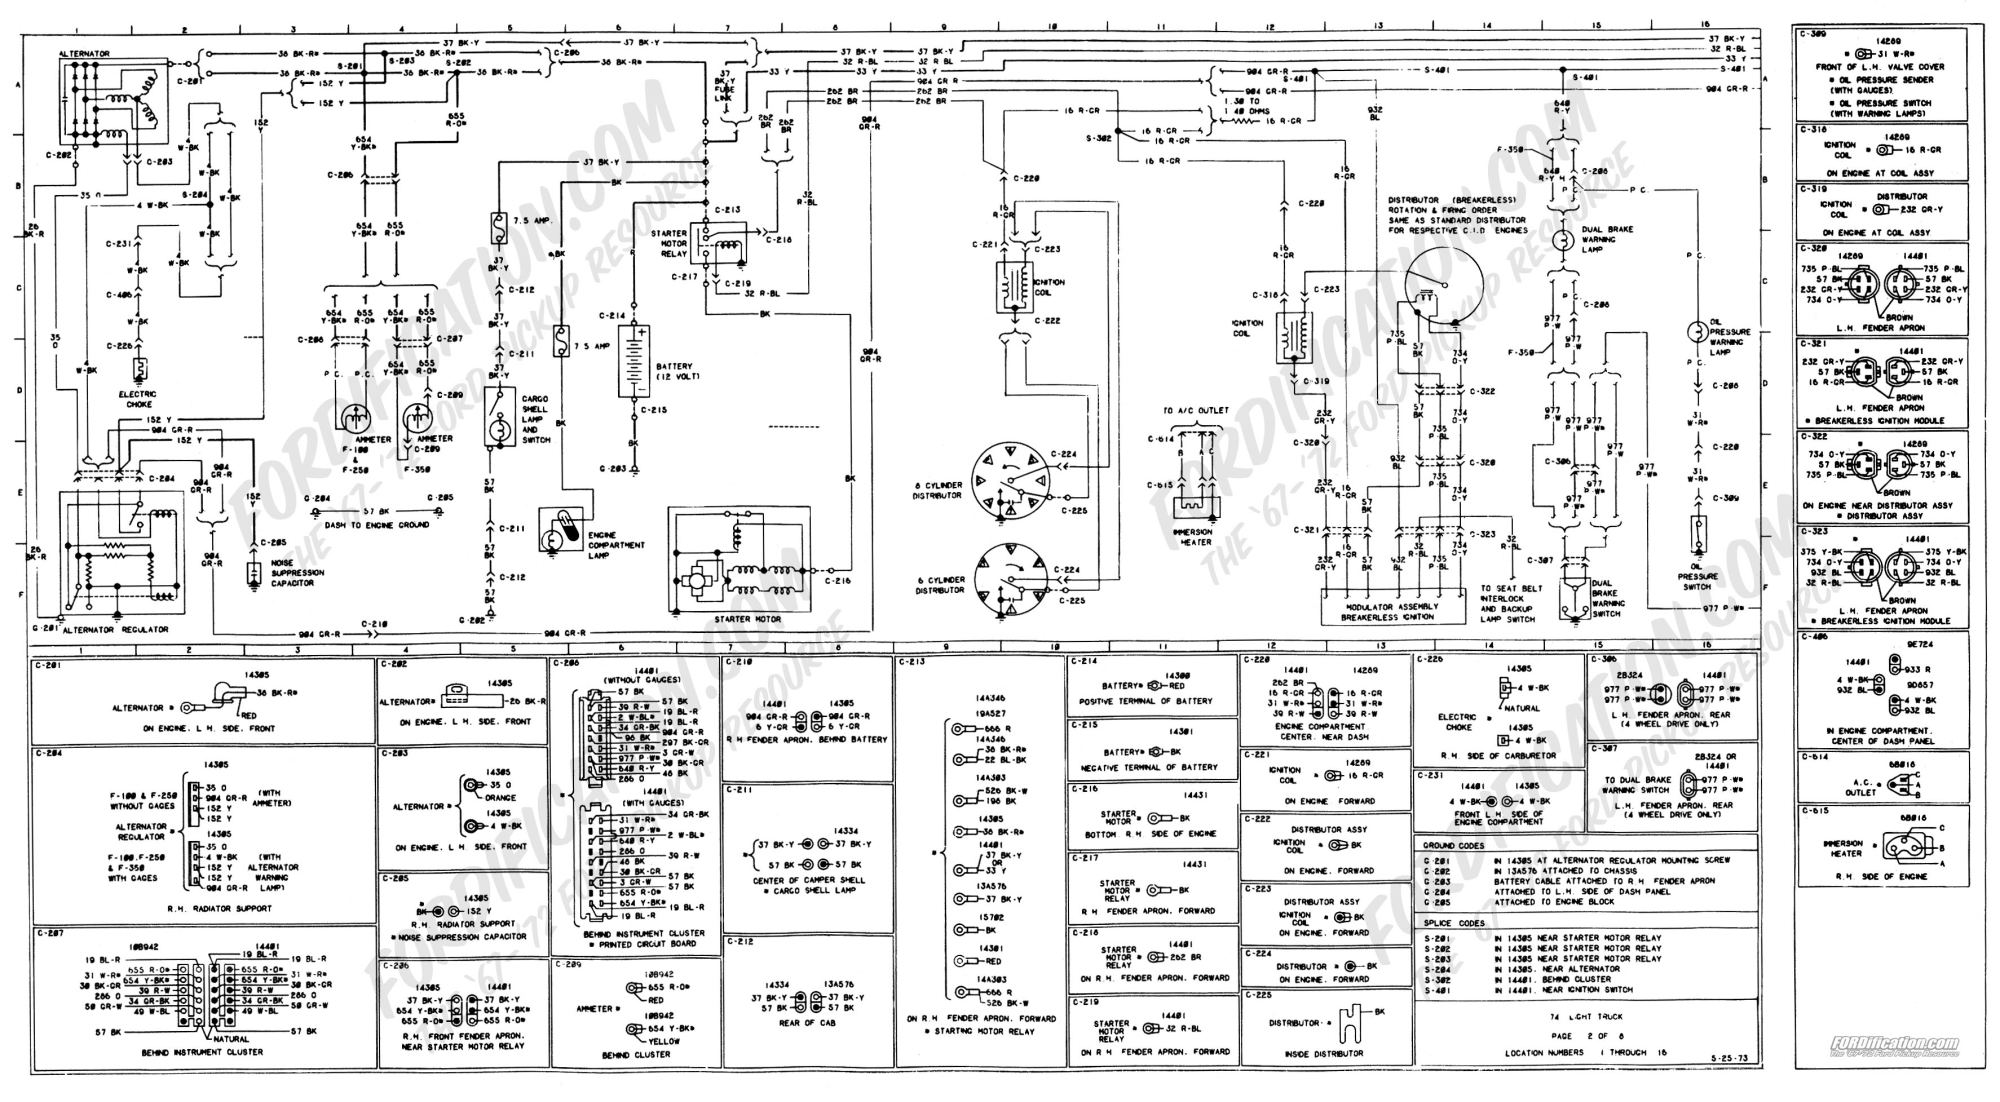 hight resolution of 1985 ford f800 wiring diagram wiring diagram database 1995 ford f800 wiring diagram 1985 ford f800